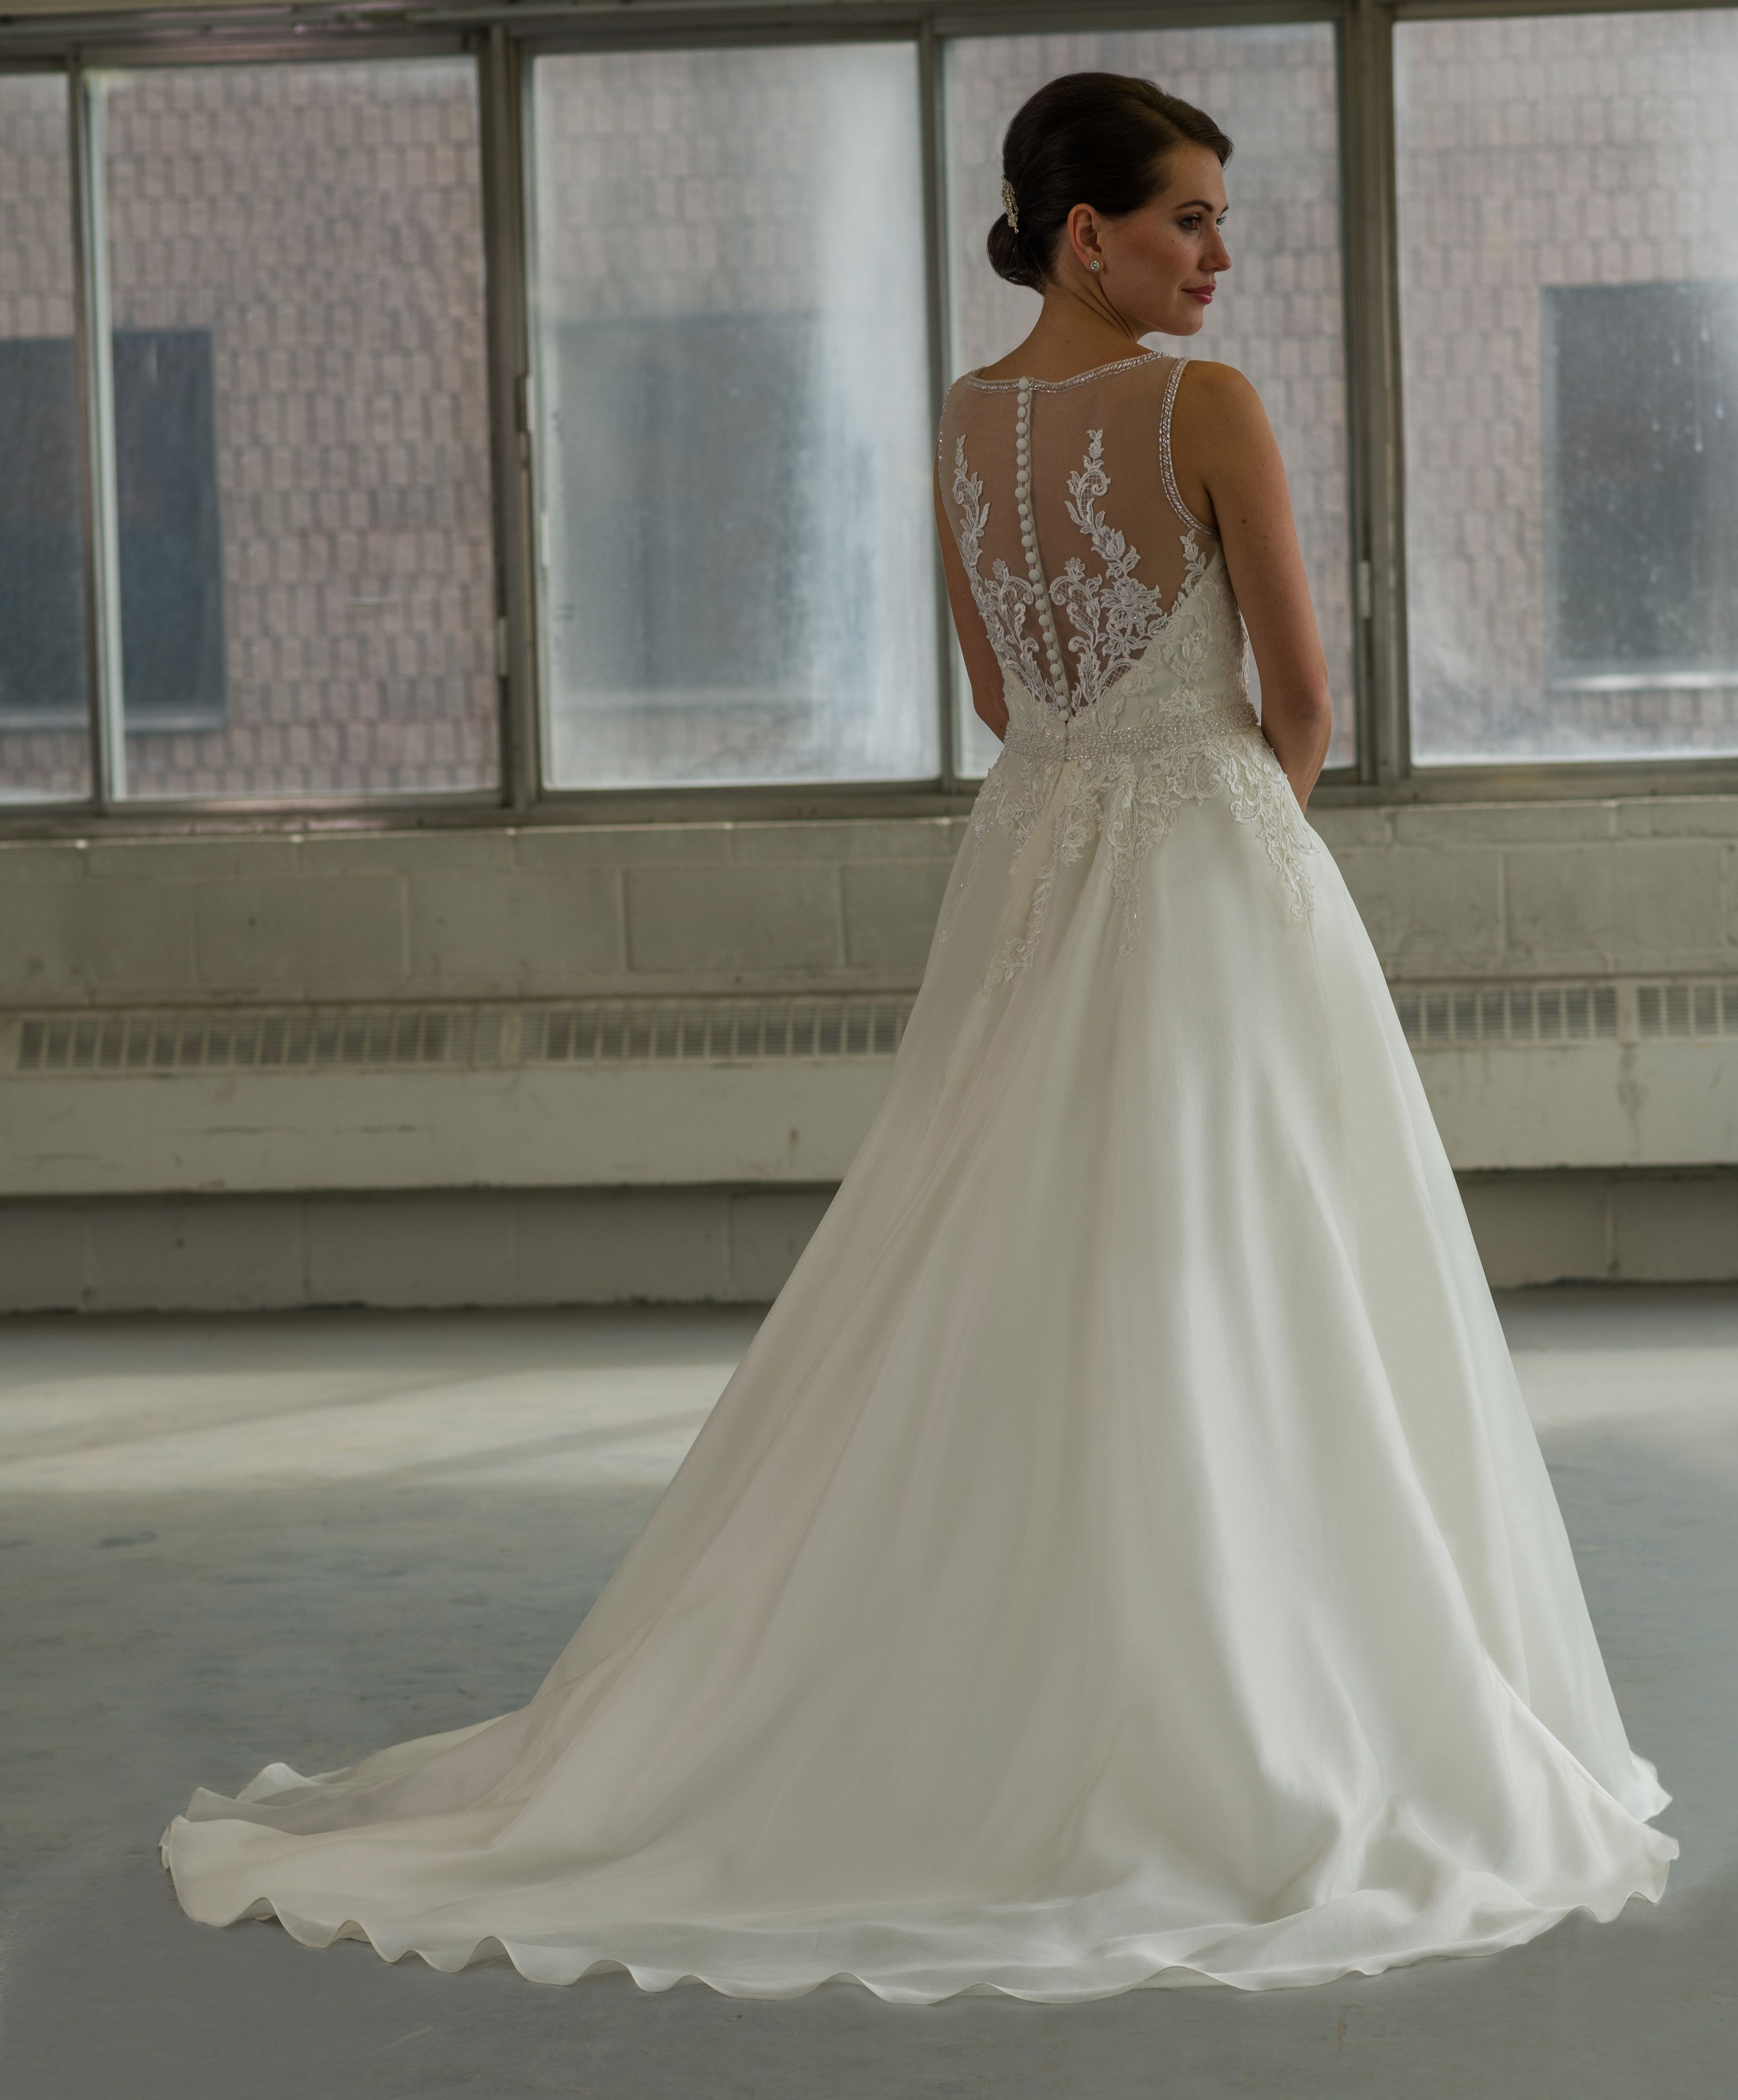 Best wedding dresses for 50 year olds  Bridalane style  silk organza wedding gown with beaded illusion